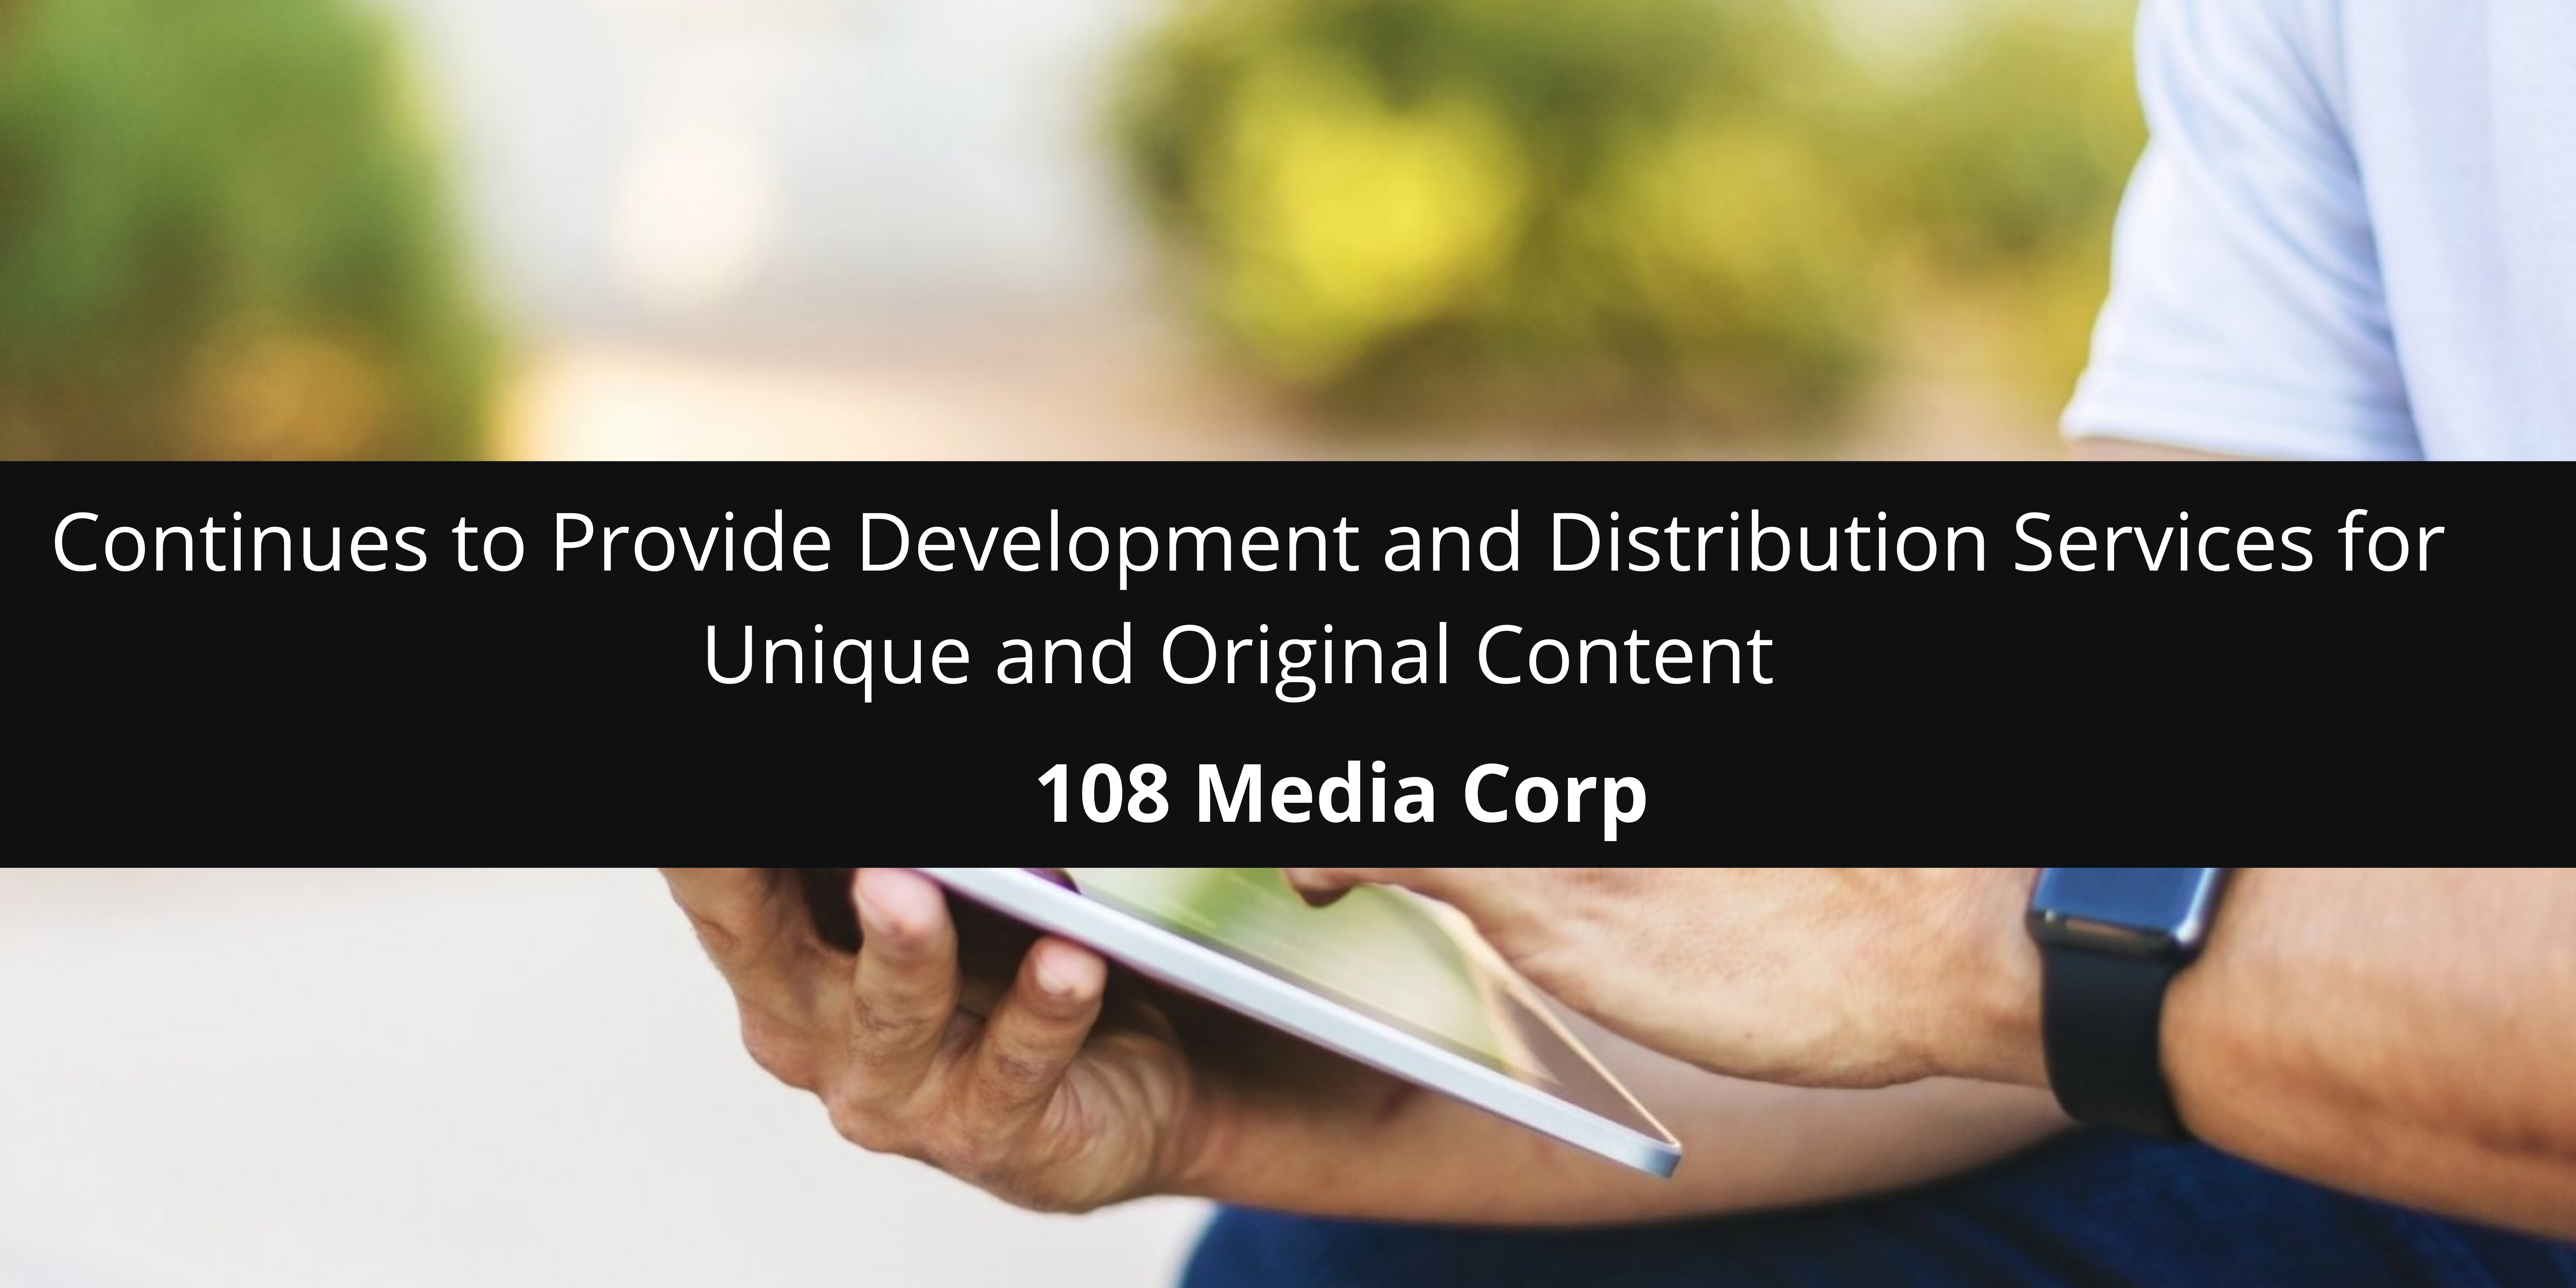 108 Media Corp Continues to Provide Development and Distribution Services for Unique and Original Content